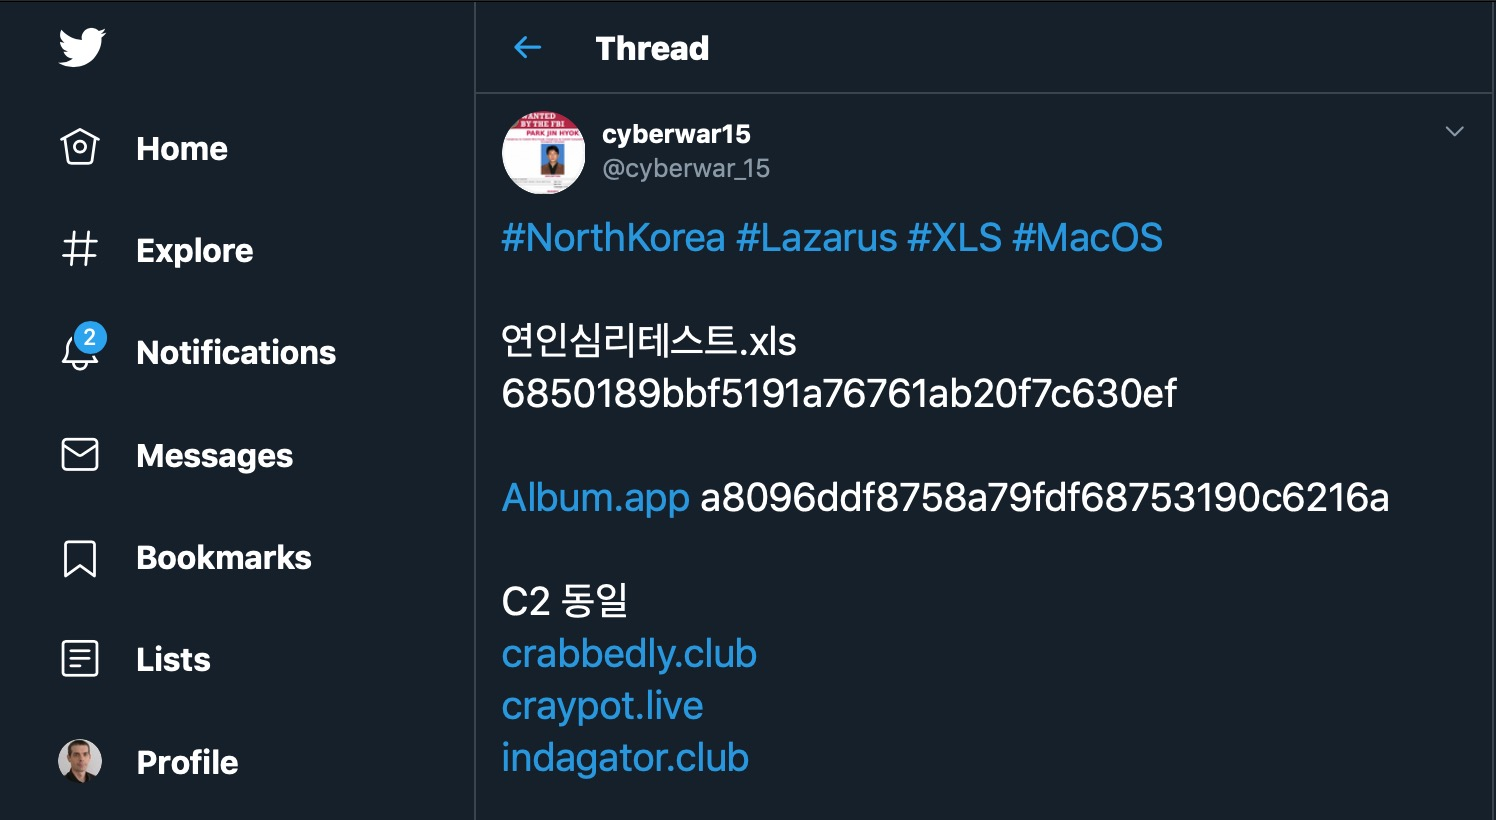 image of Lazarus Album tweet